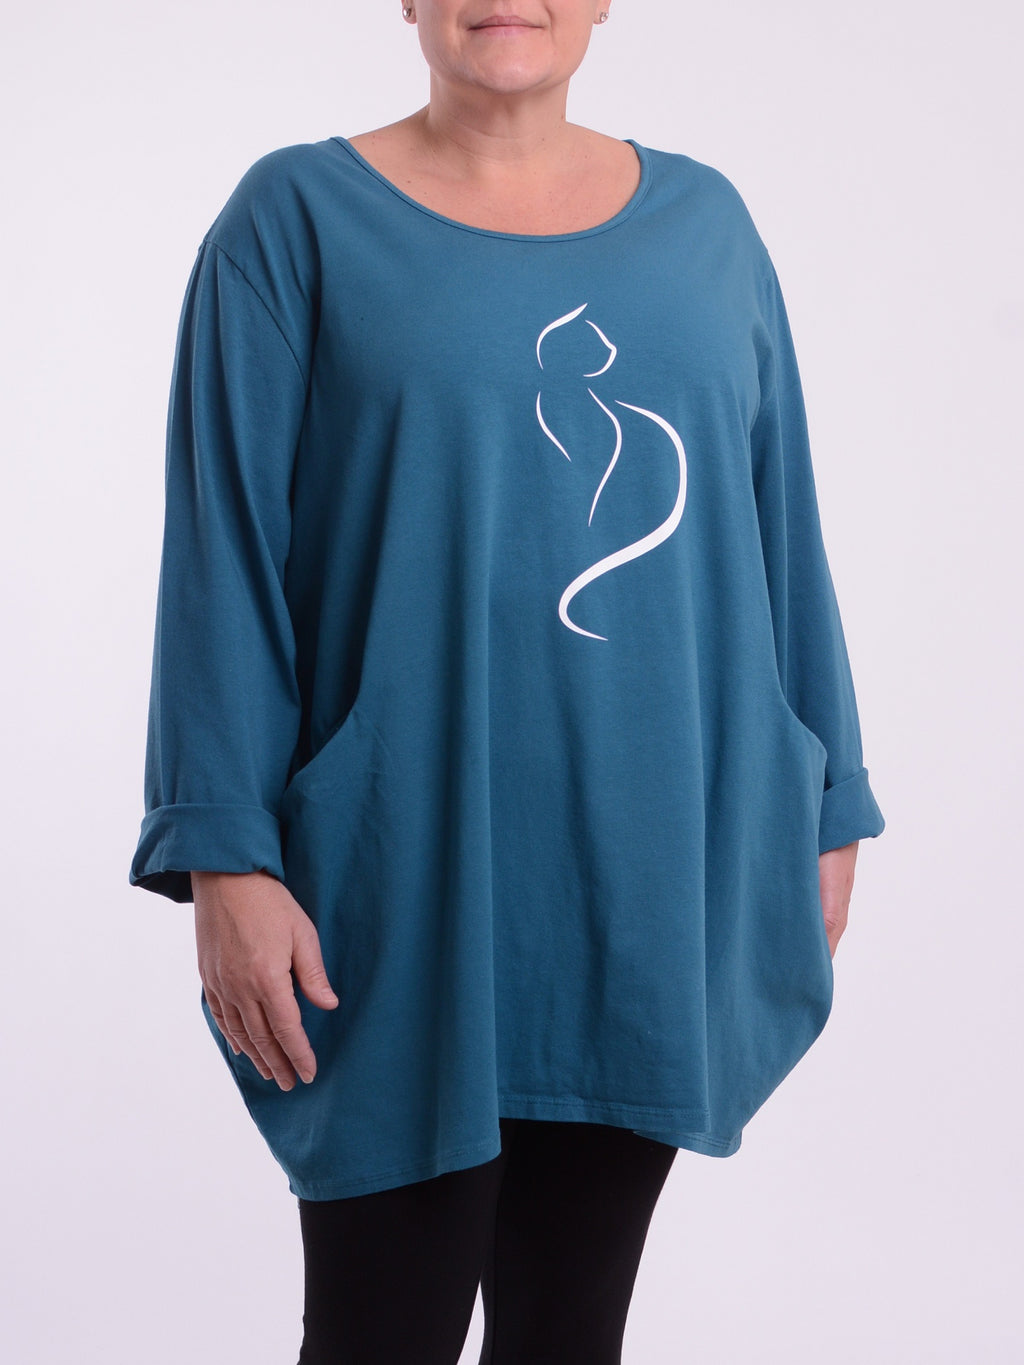 Basic Long Sleeve Tunic Top 9458 - Cat - Pure Plus Clothing